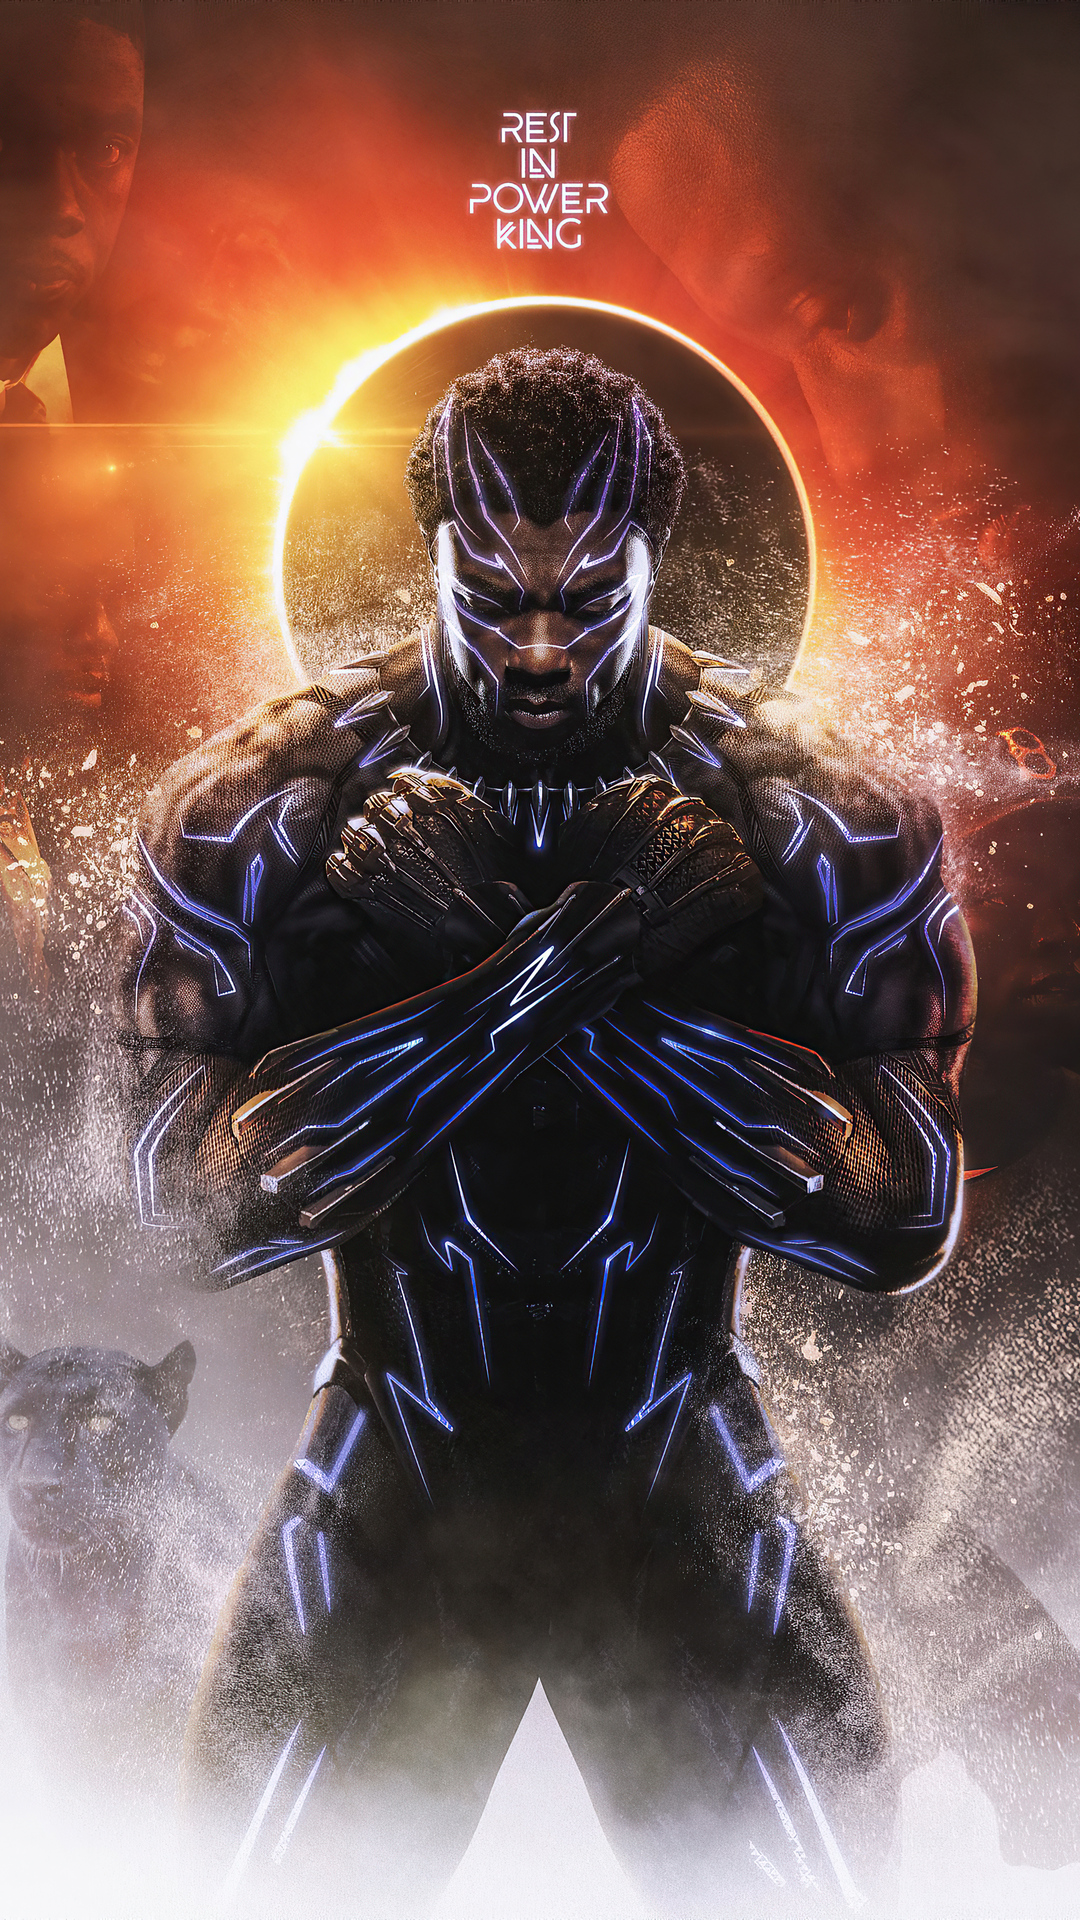 black-panther-wakanda-king-2020-0c.jpg